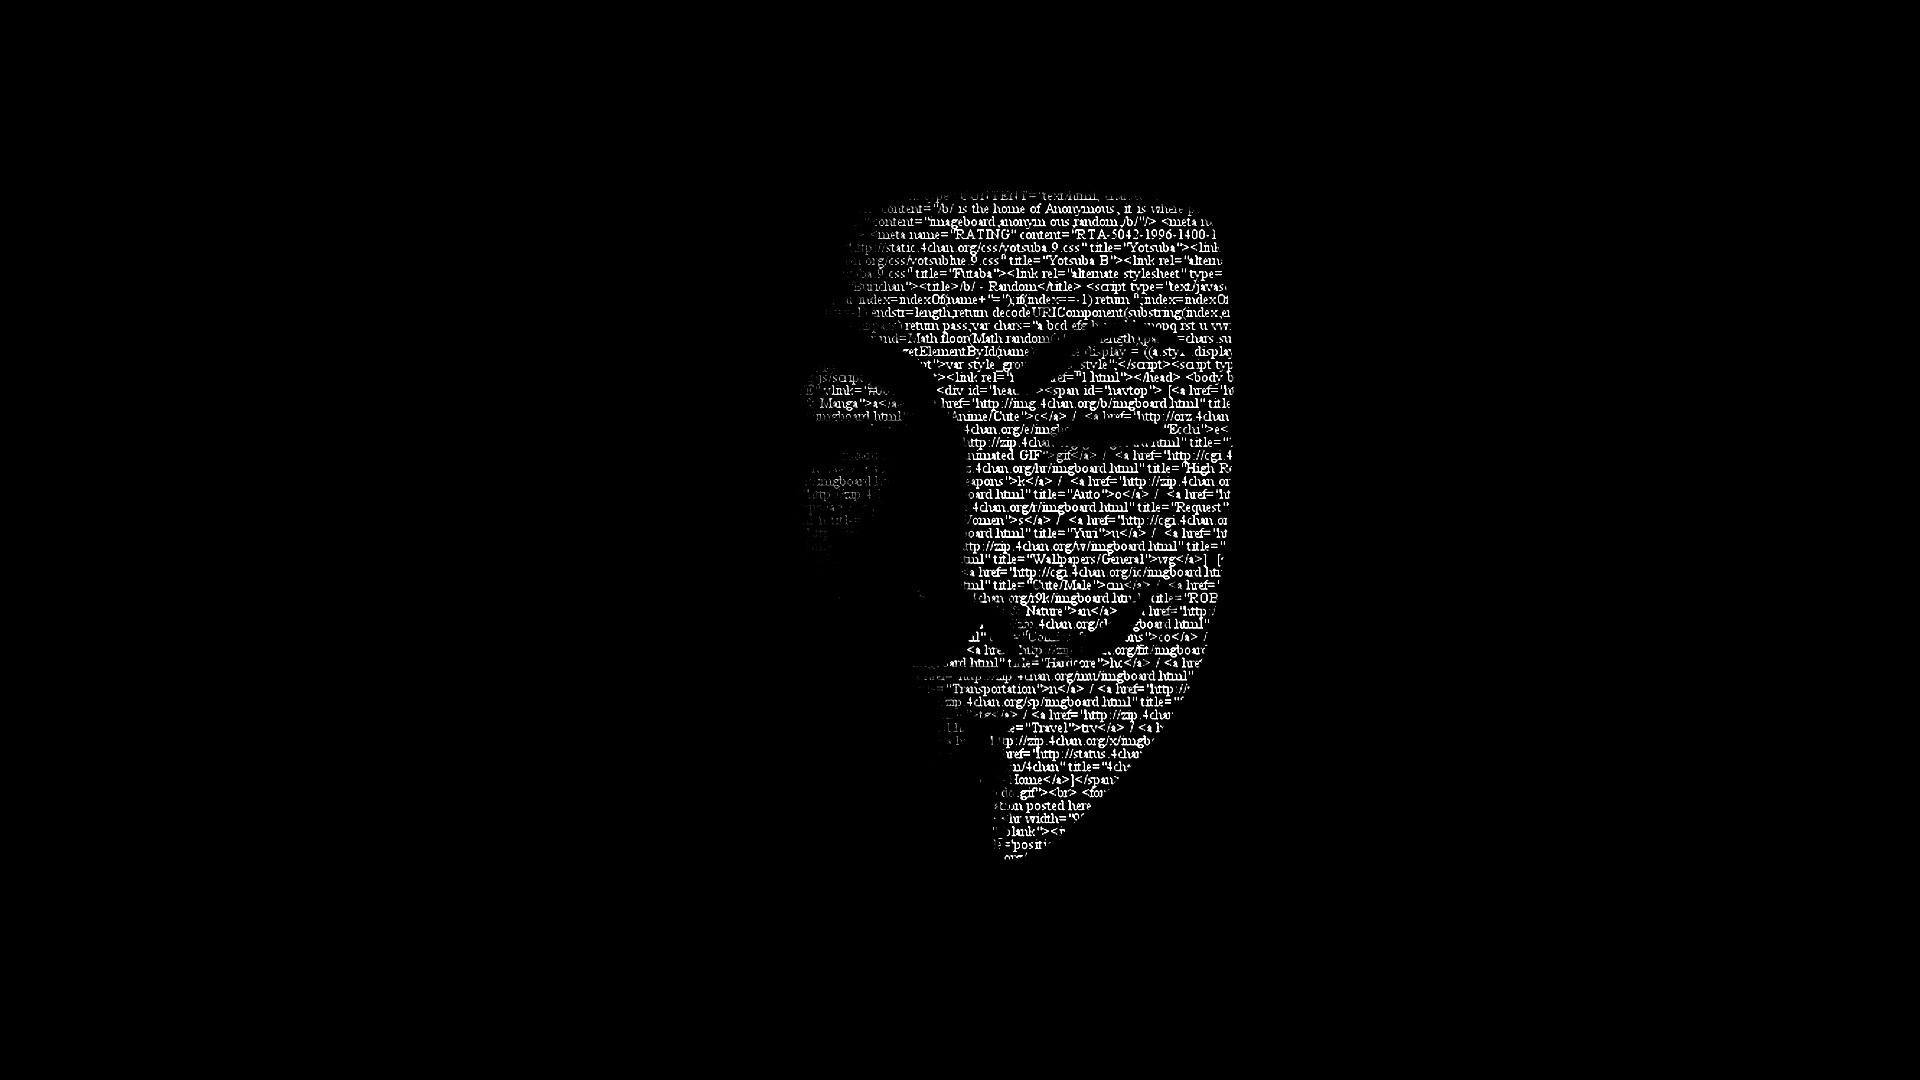 anonymous-mask-vector-hd-wallpaper-1920x1080-5660